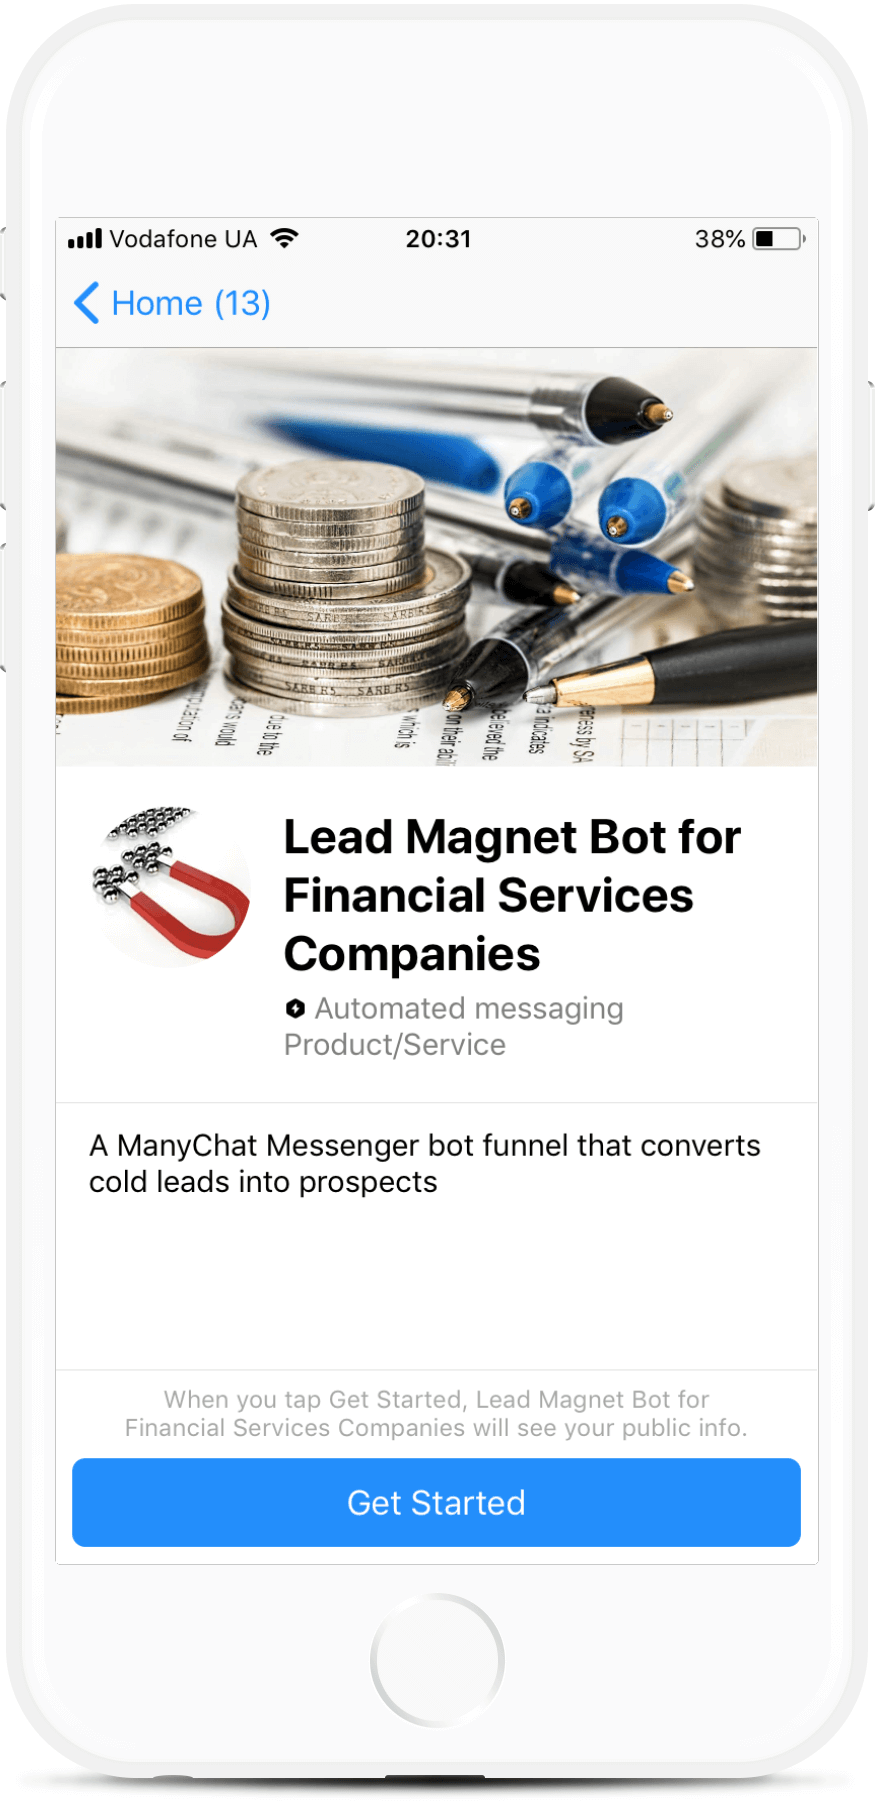 Lead Magnet Bot for Financial Services Companies bot screenshot